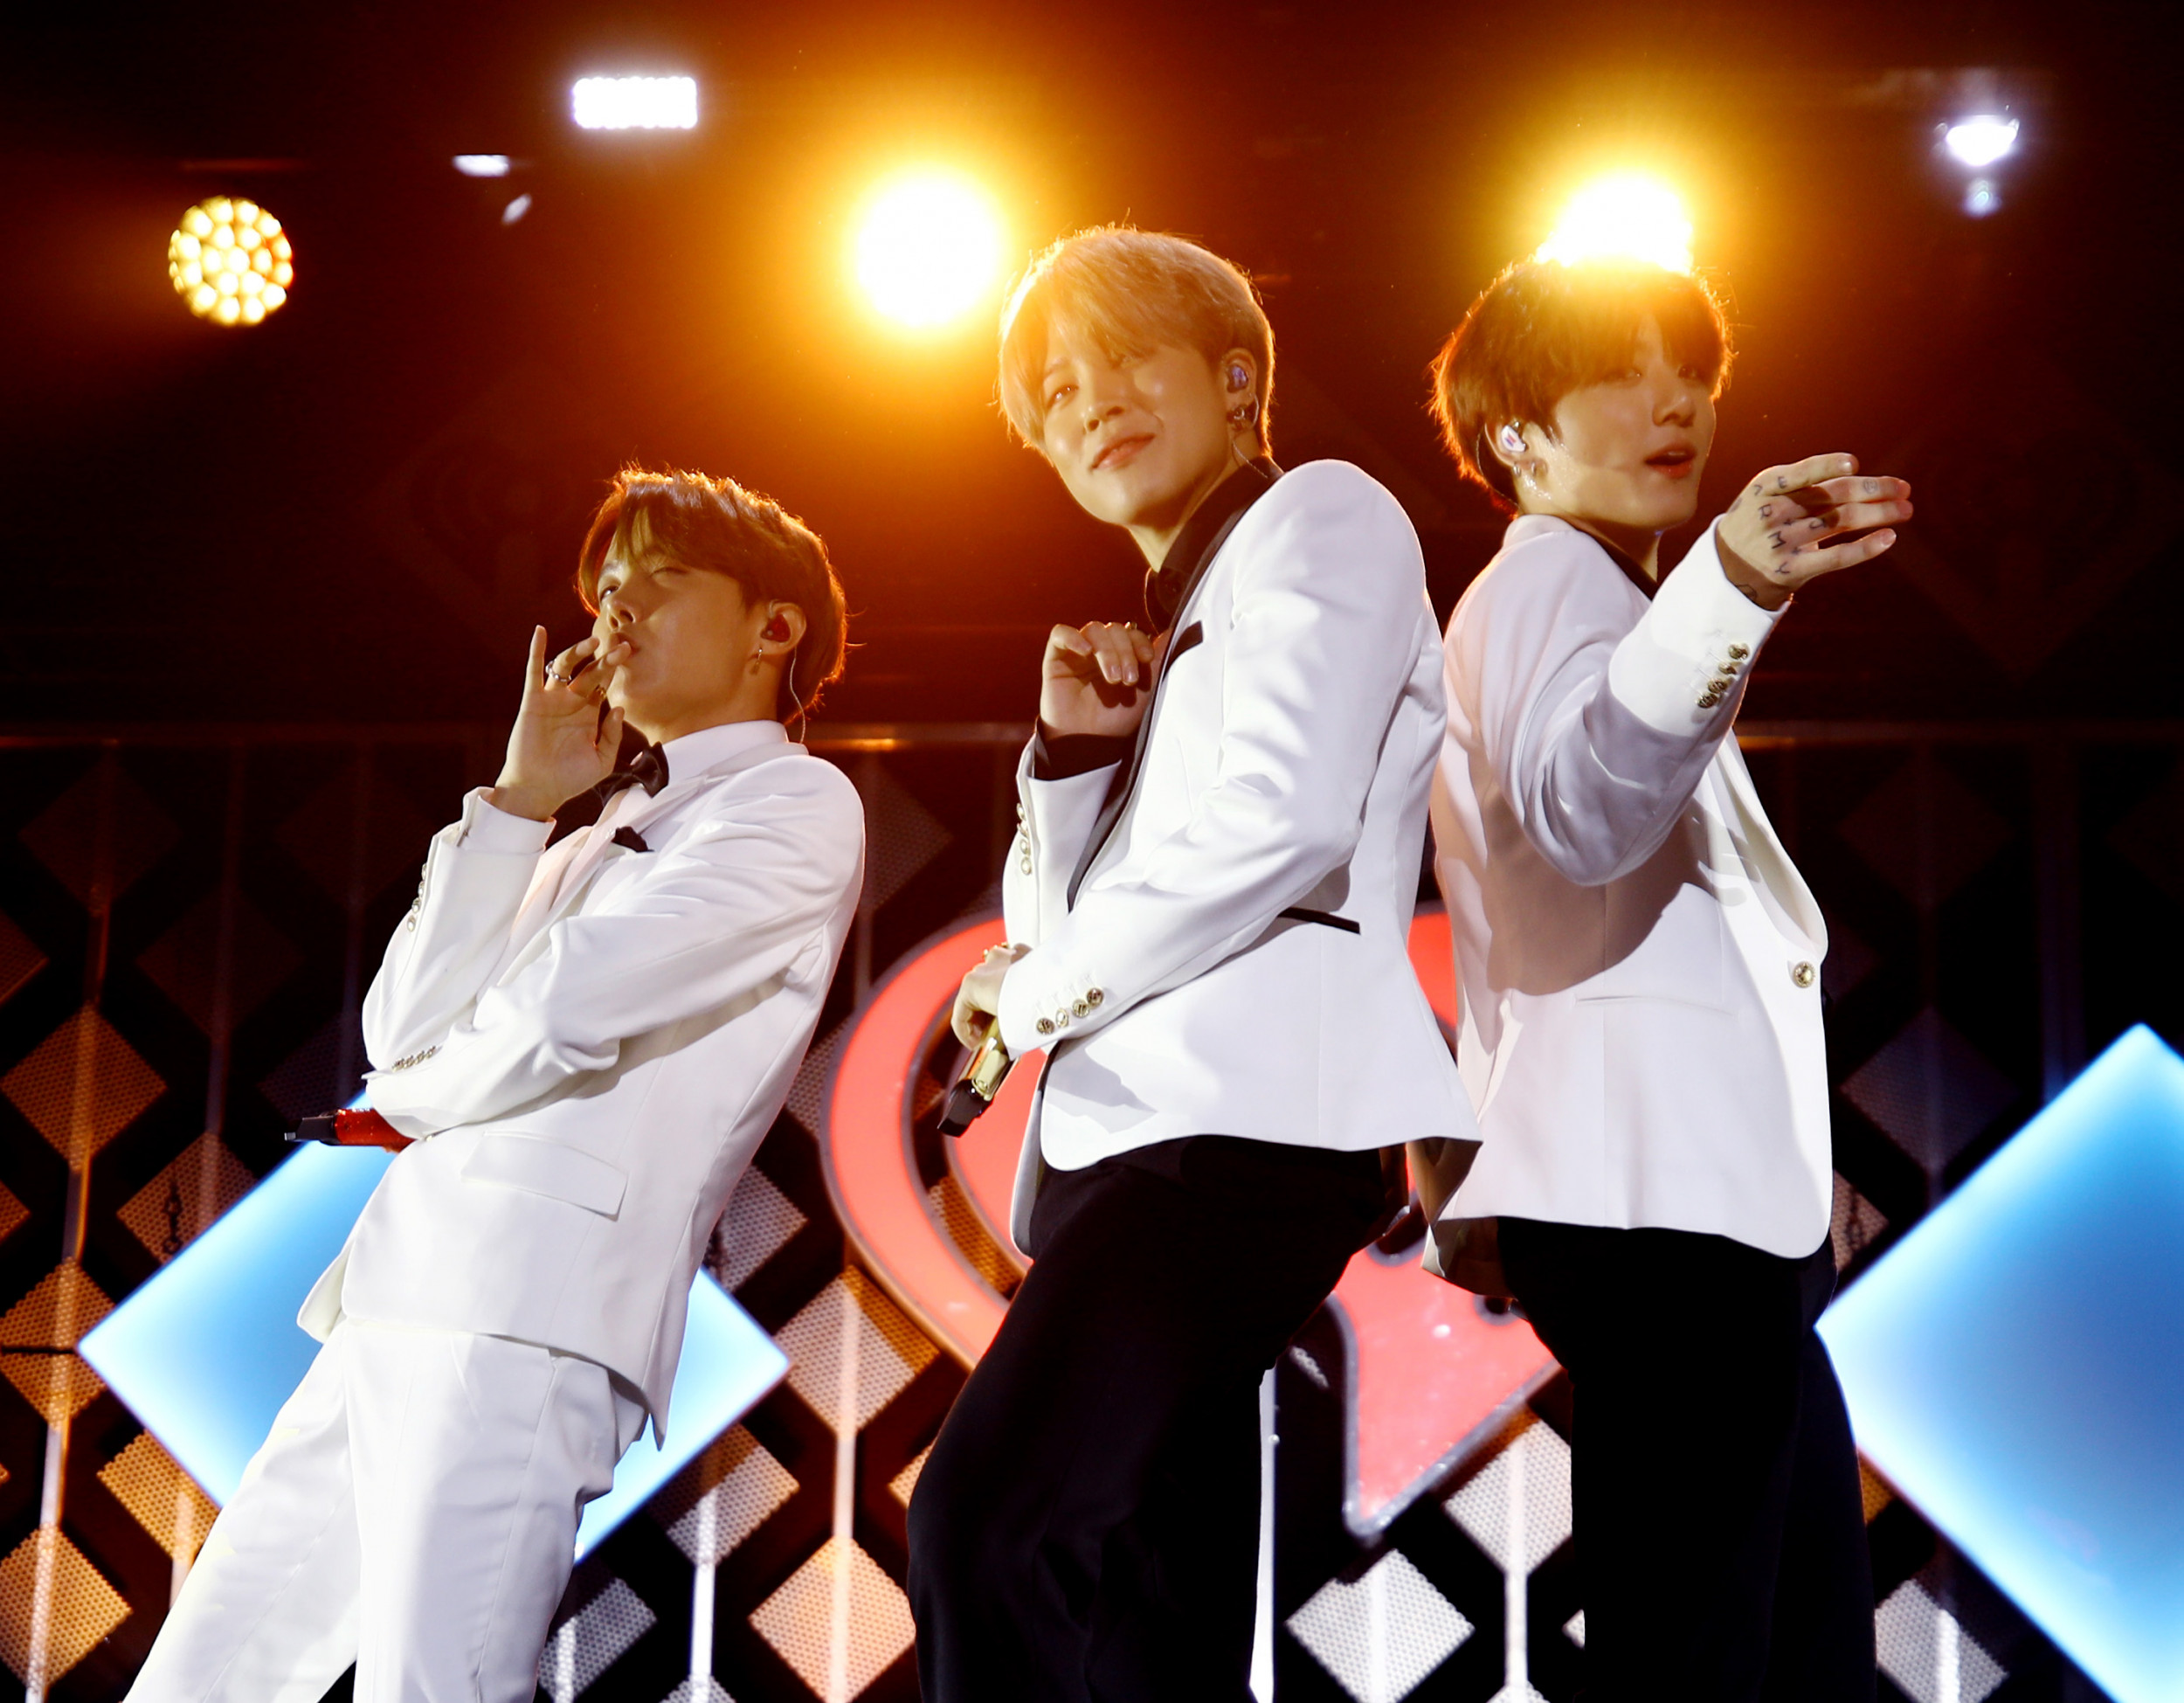 BTS performs Christmas songs at SBS Gayo Daejeon and now fans want a holiday album